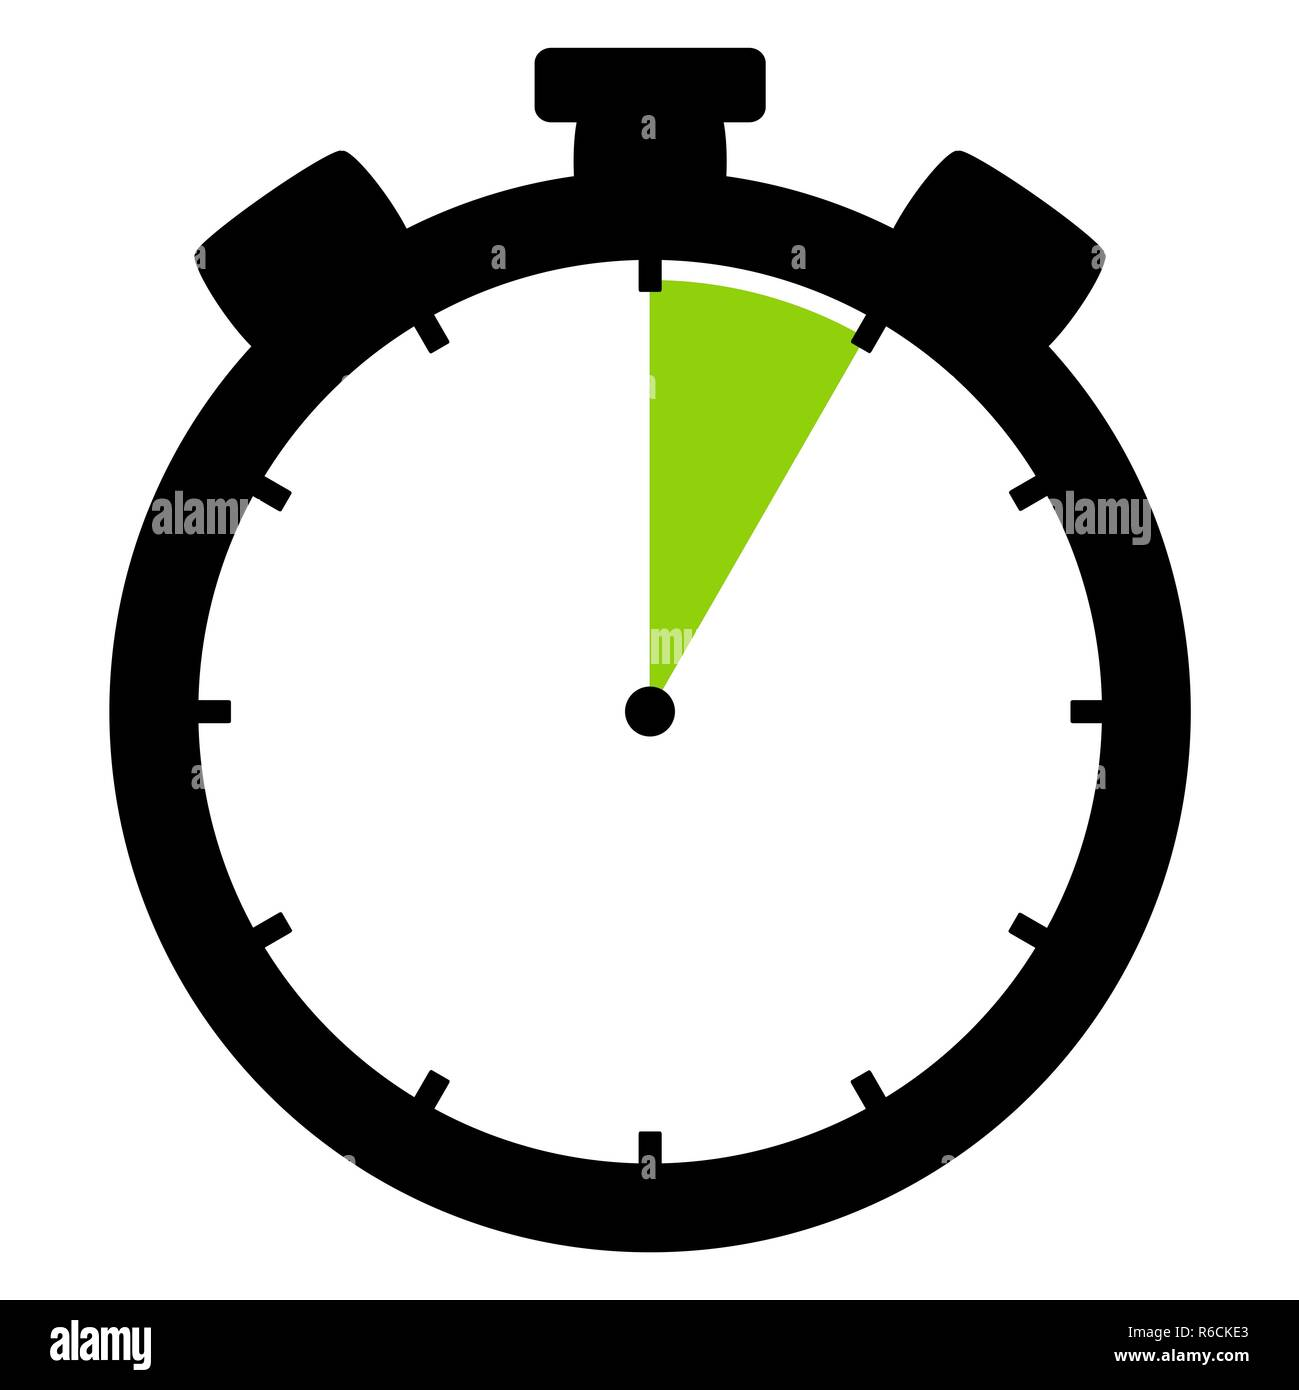 stopwatch icon: 5 minutes 5 seconds or 1 hour - Stock Image